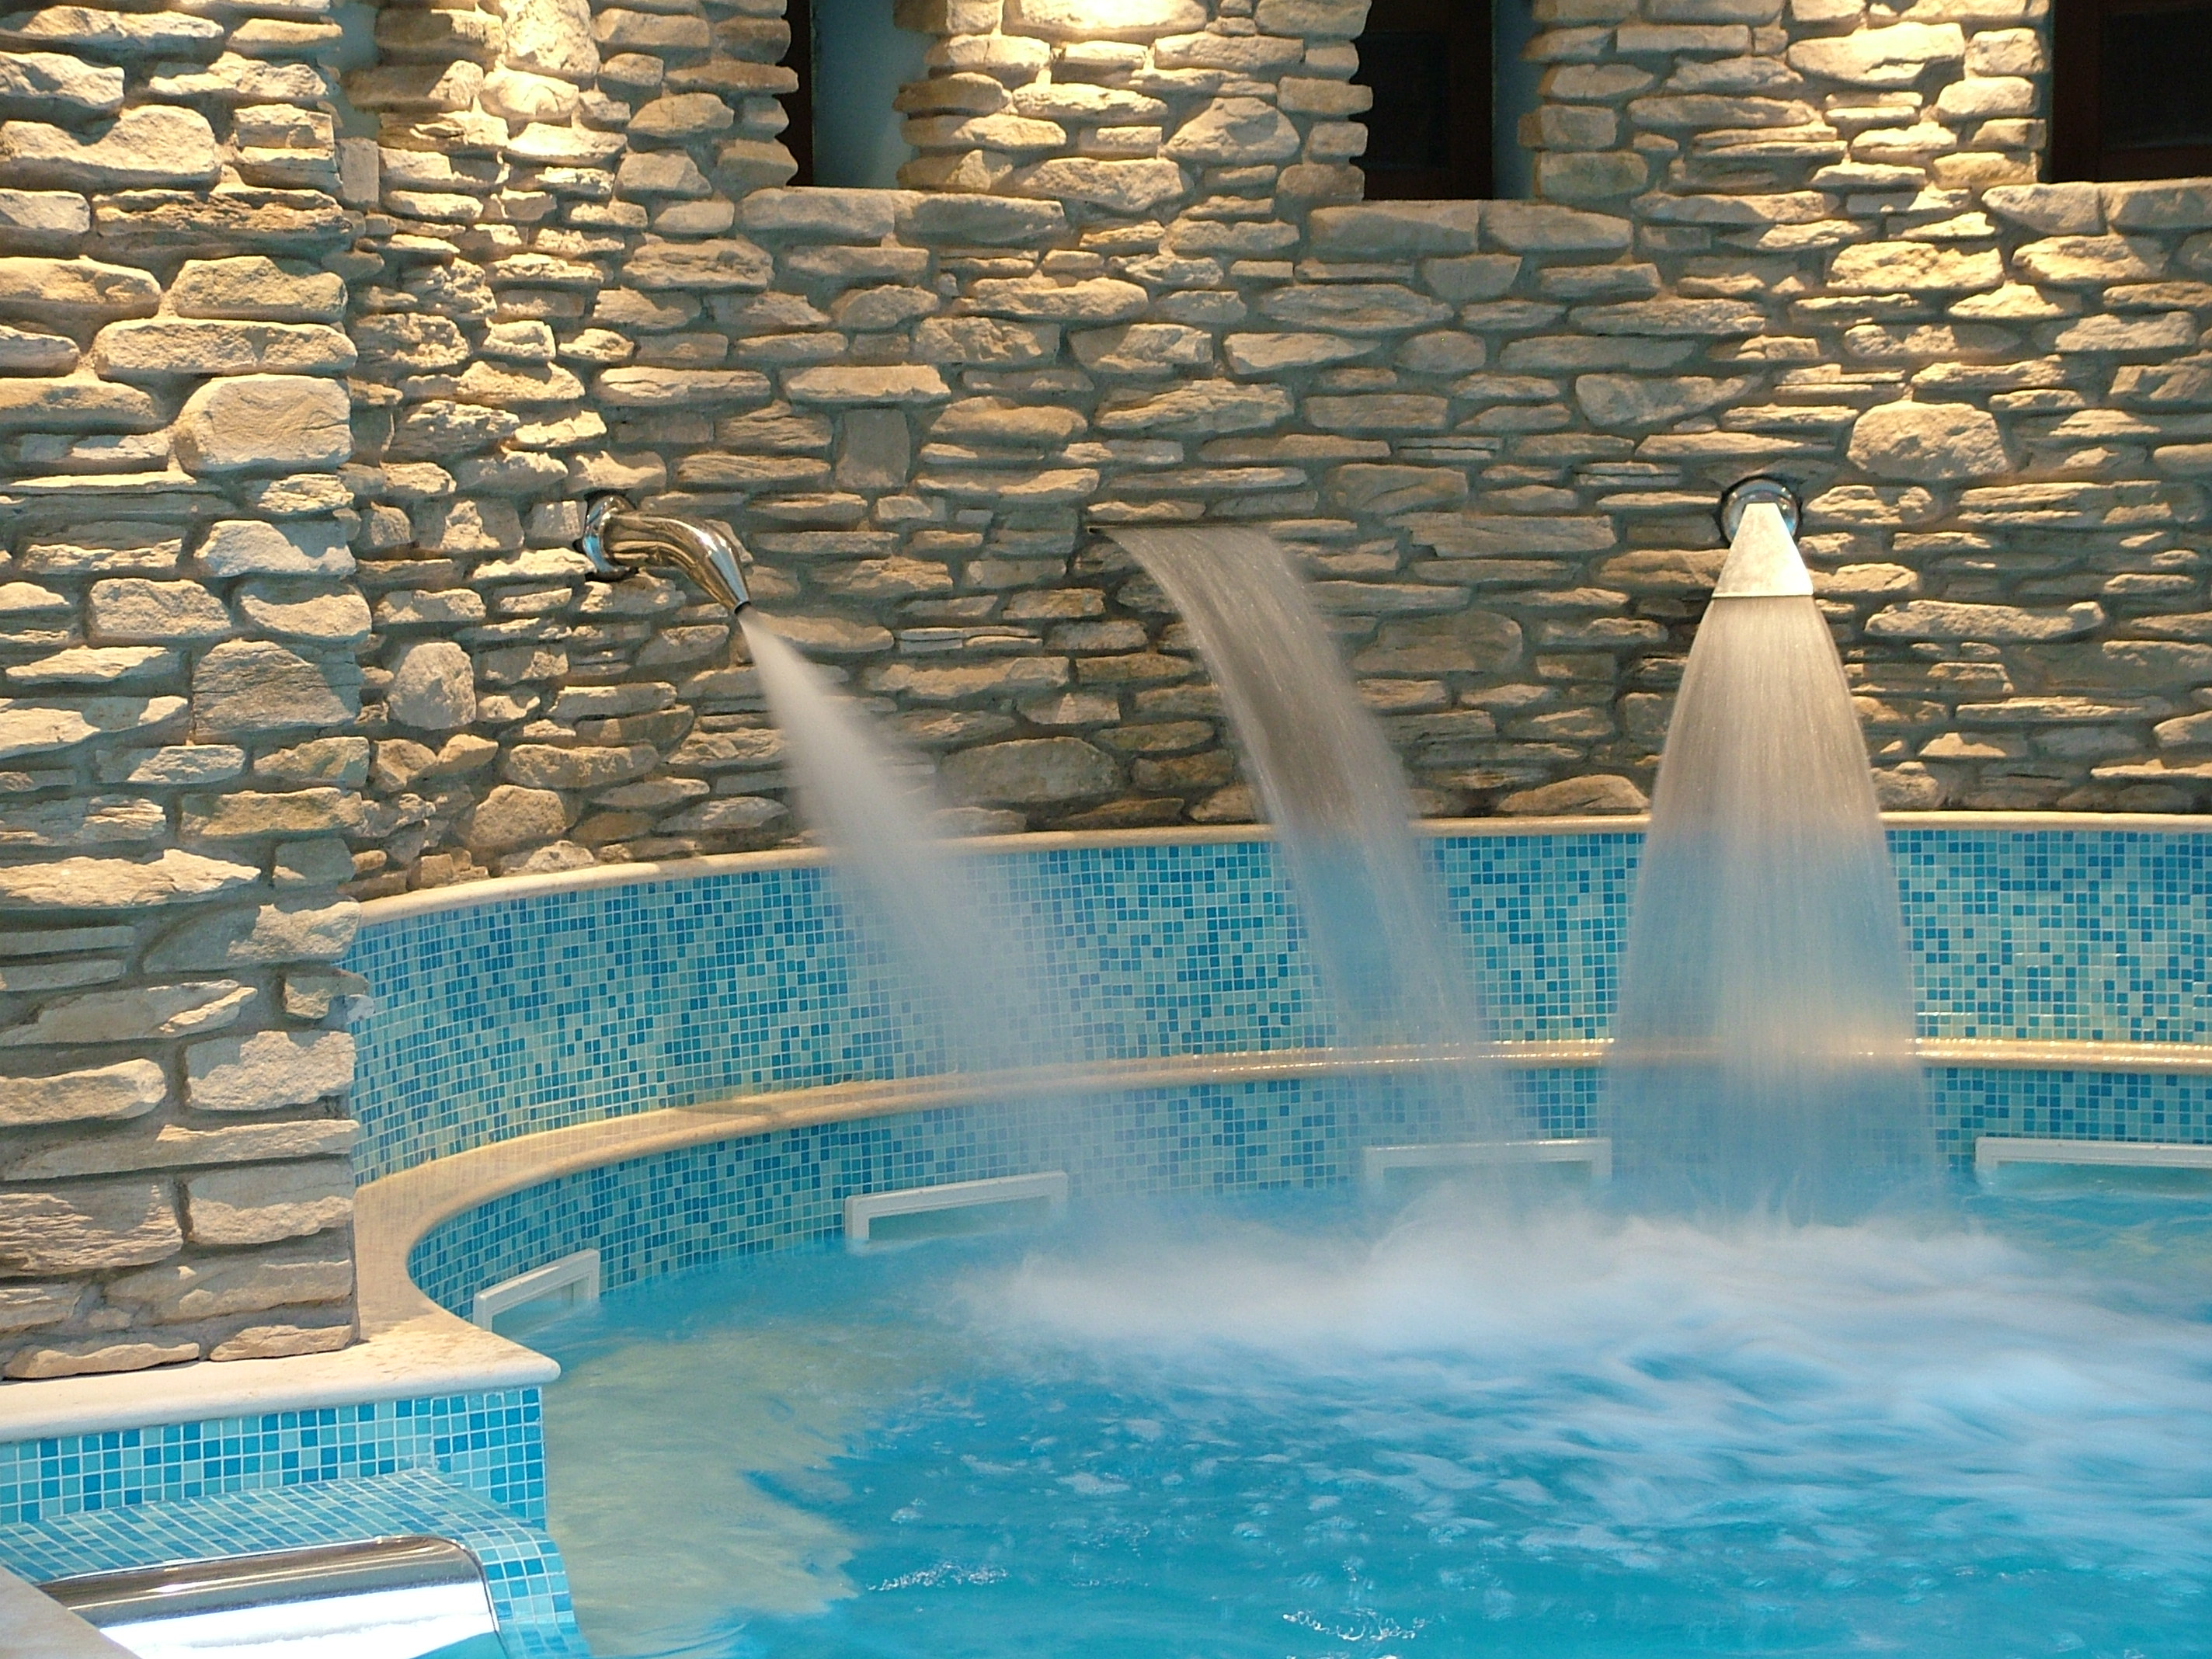 Swimming pool with stainless steel wall mounted water fountains